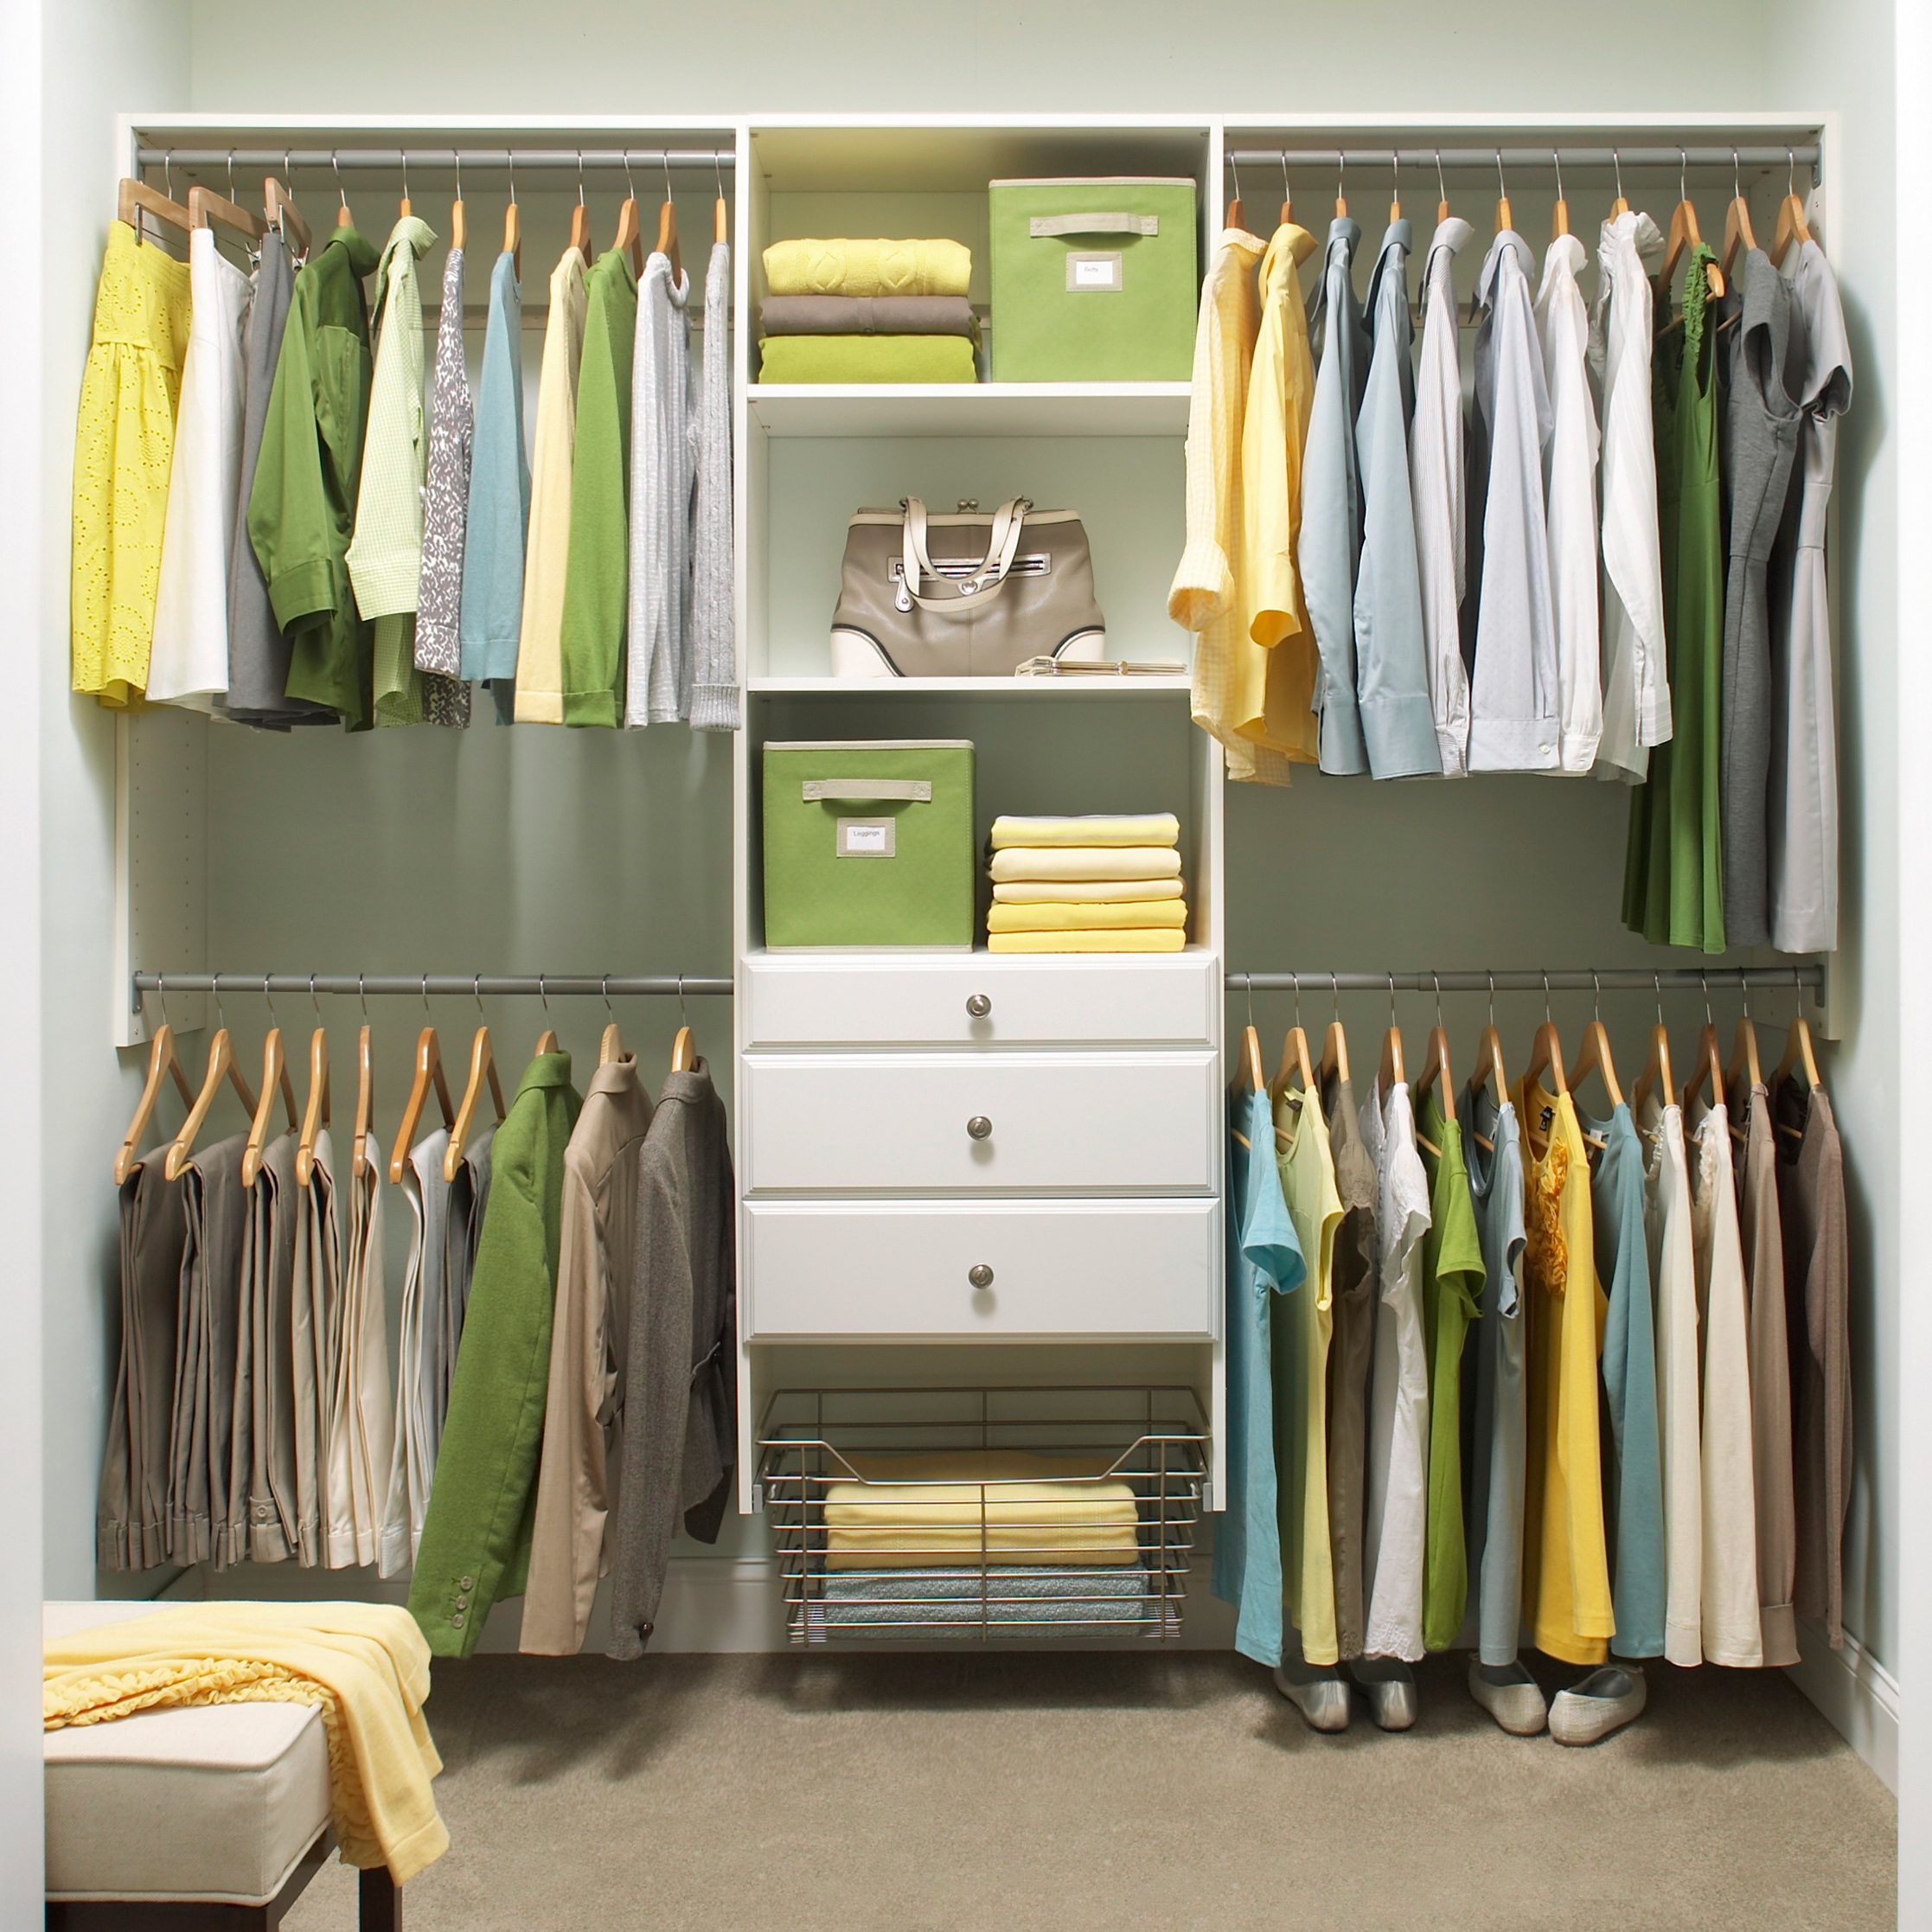 in builtin for ideas organizers with bedroom small closets shelving do marvelous yourself closet systems of home best